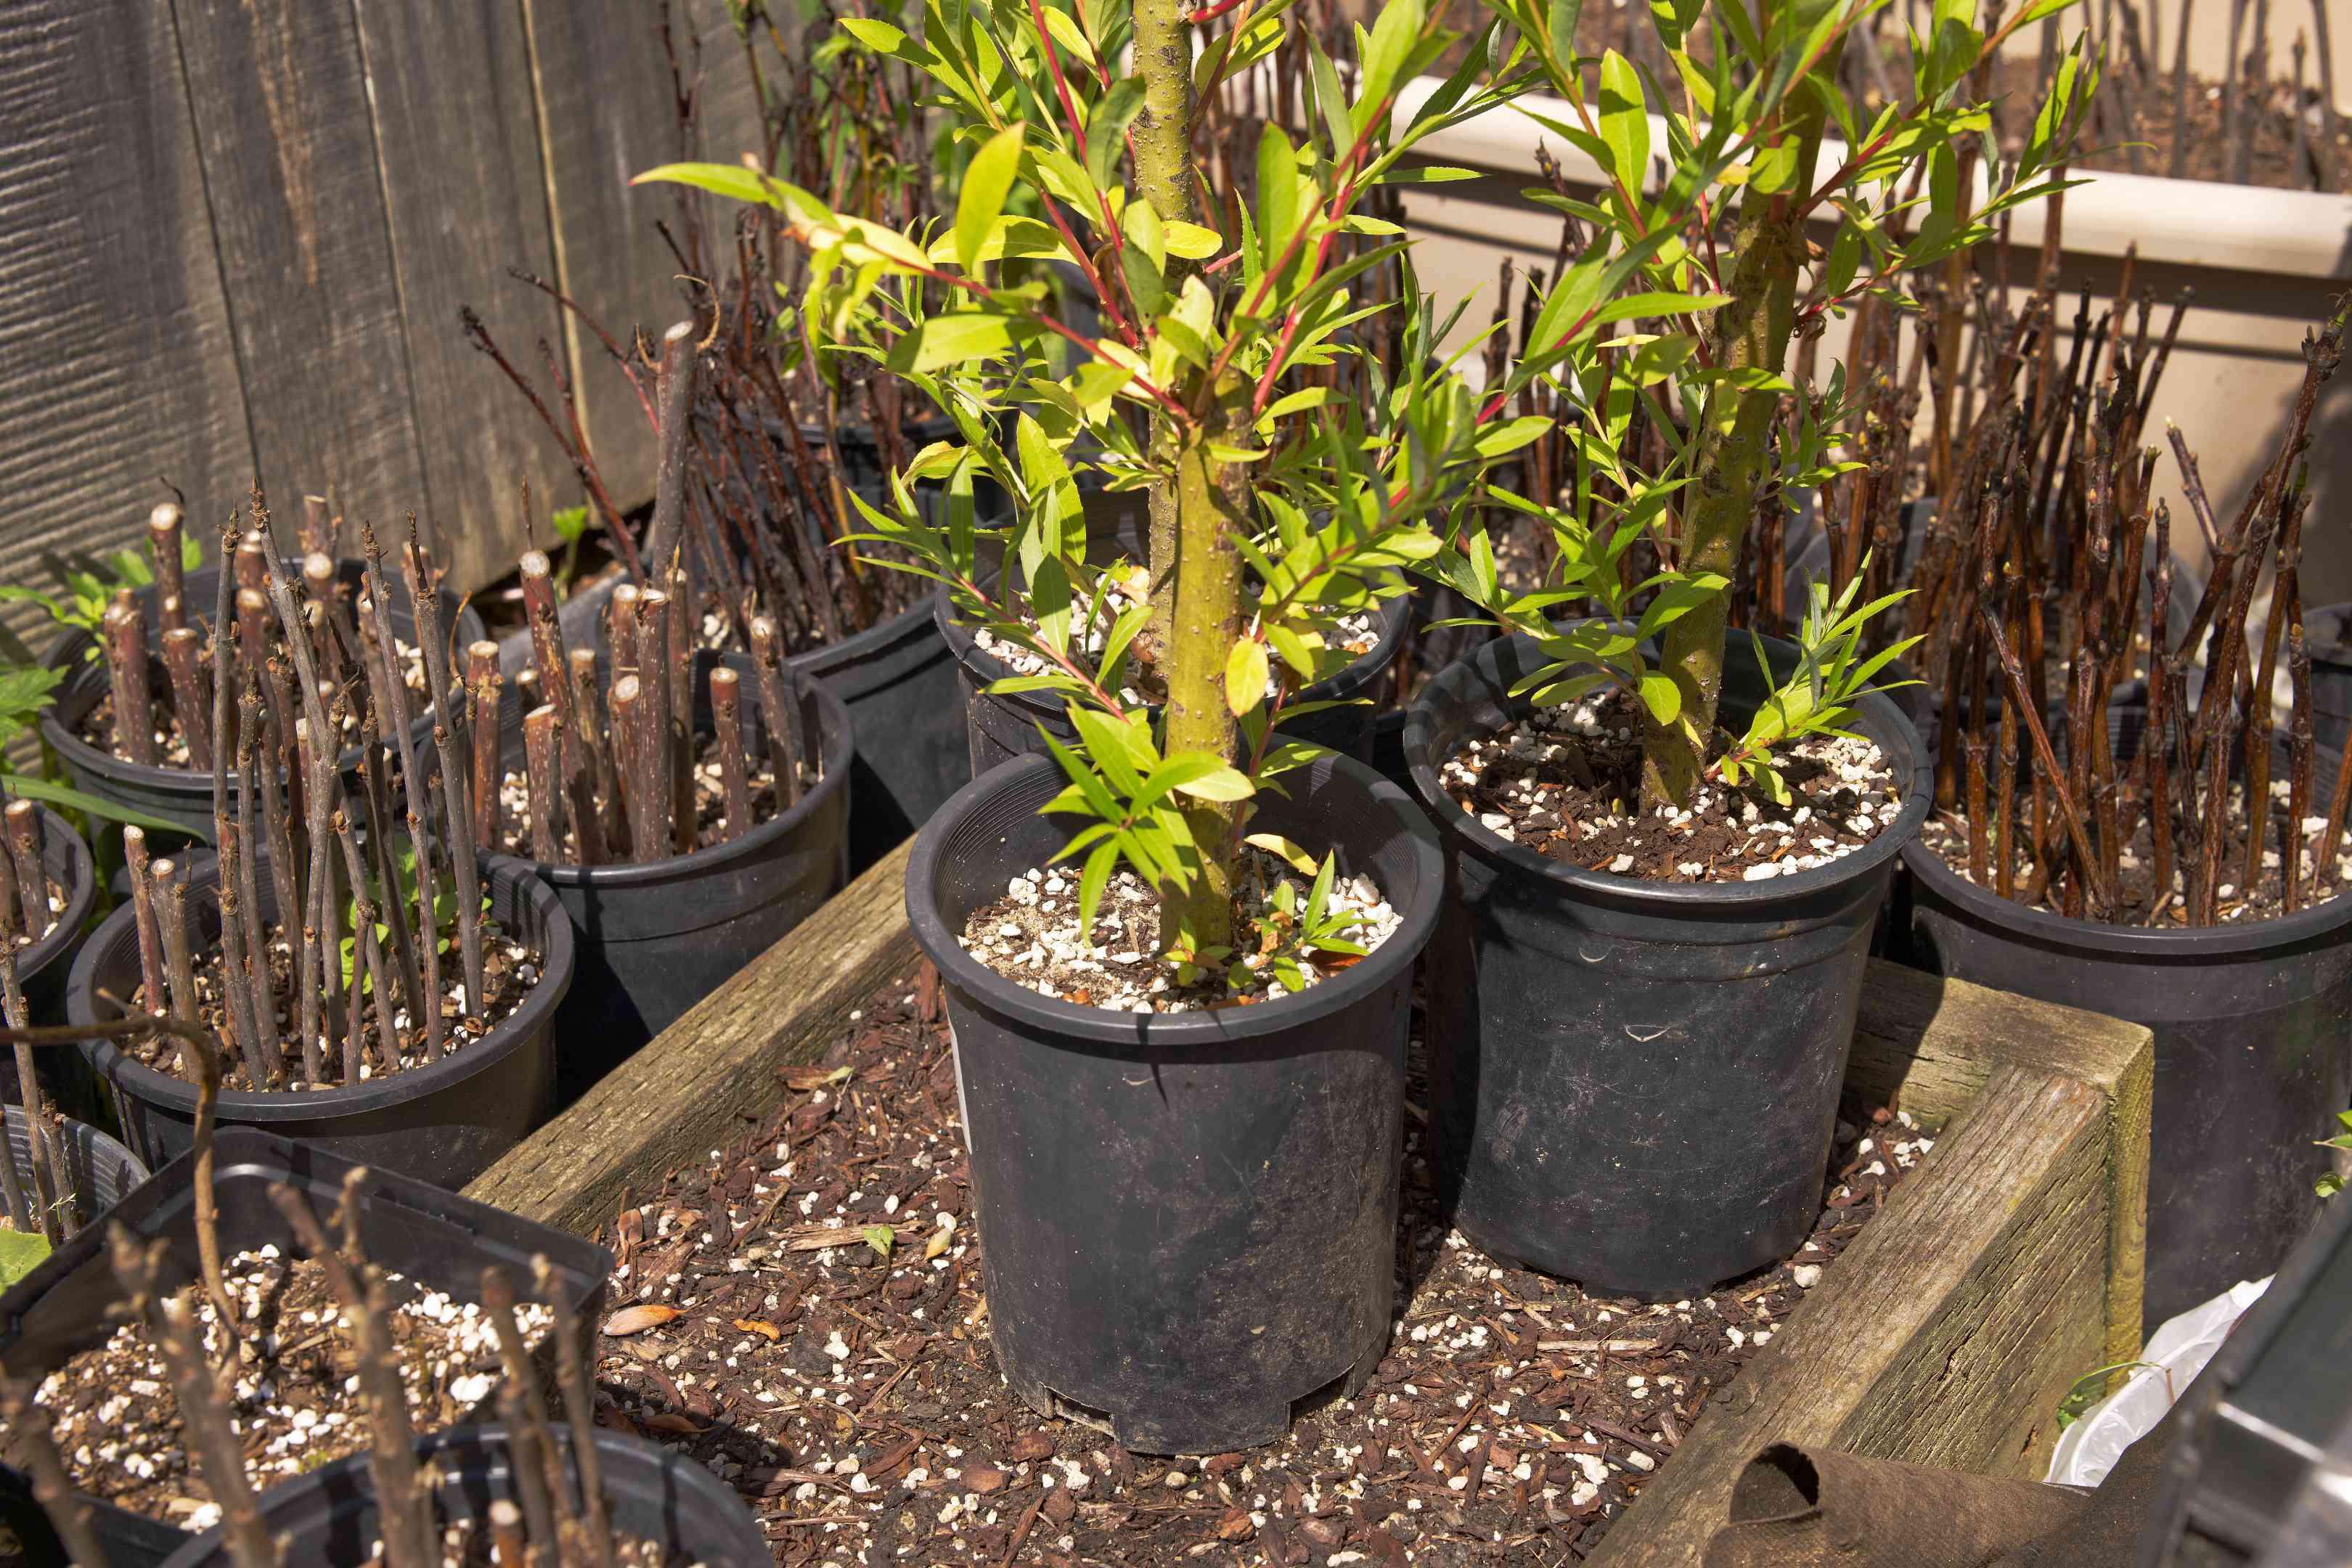 various small trees in plastic potting buckets ready to be planted